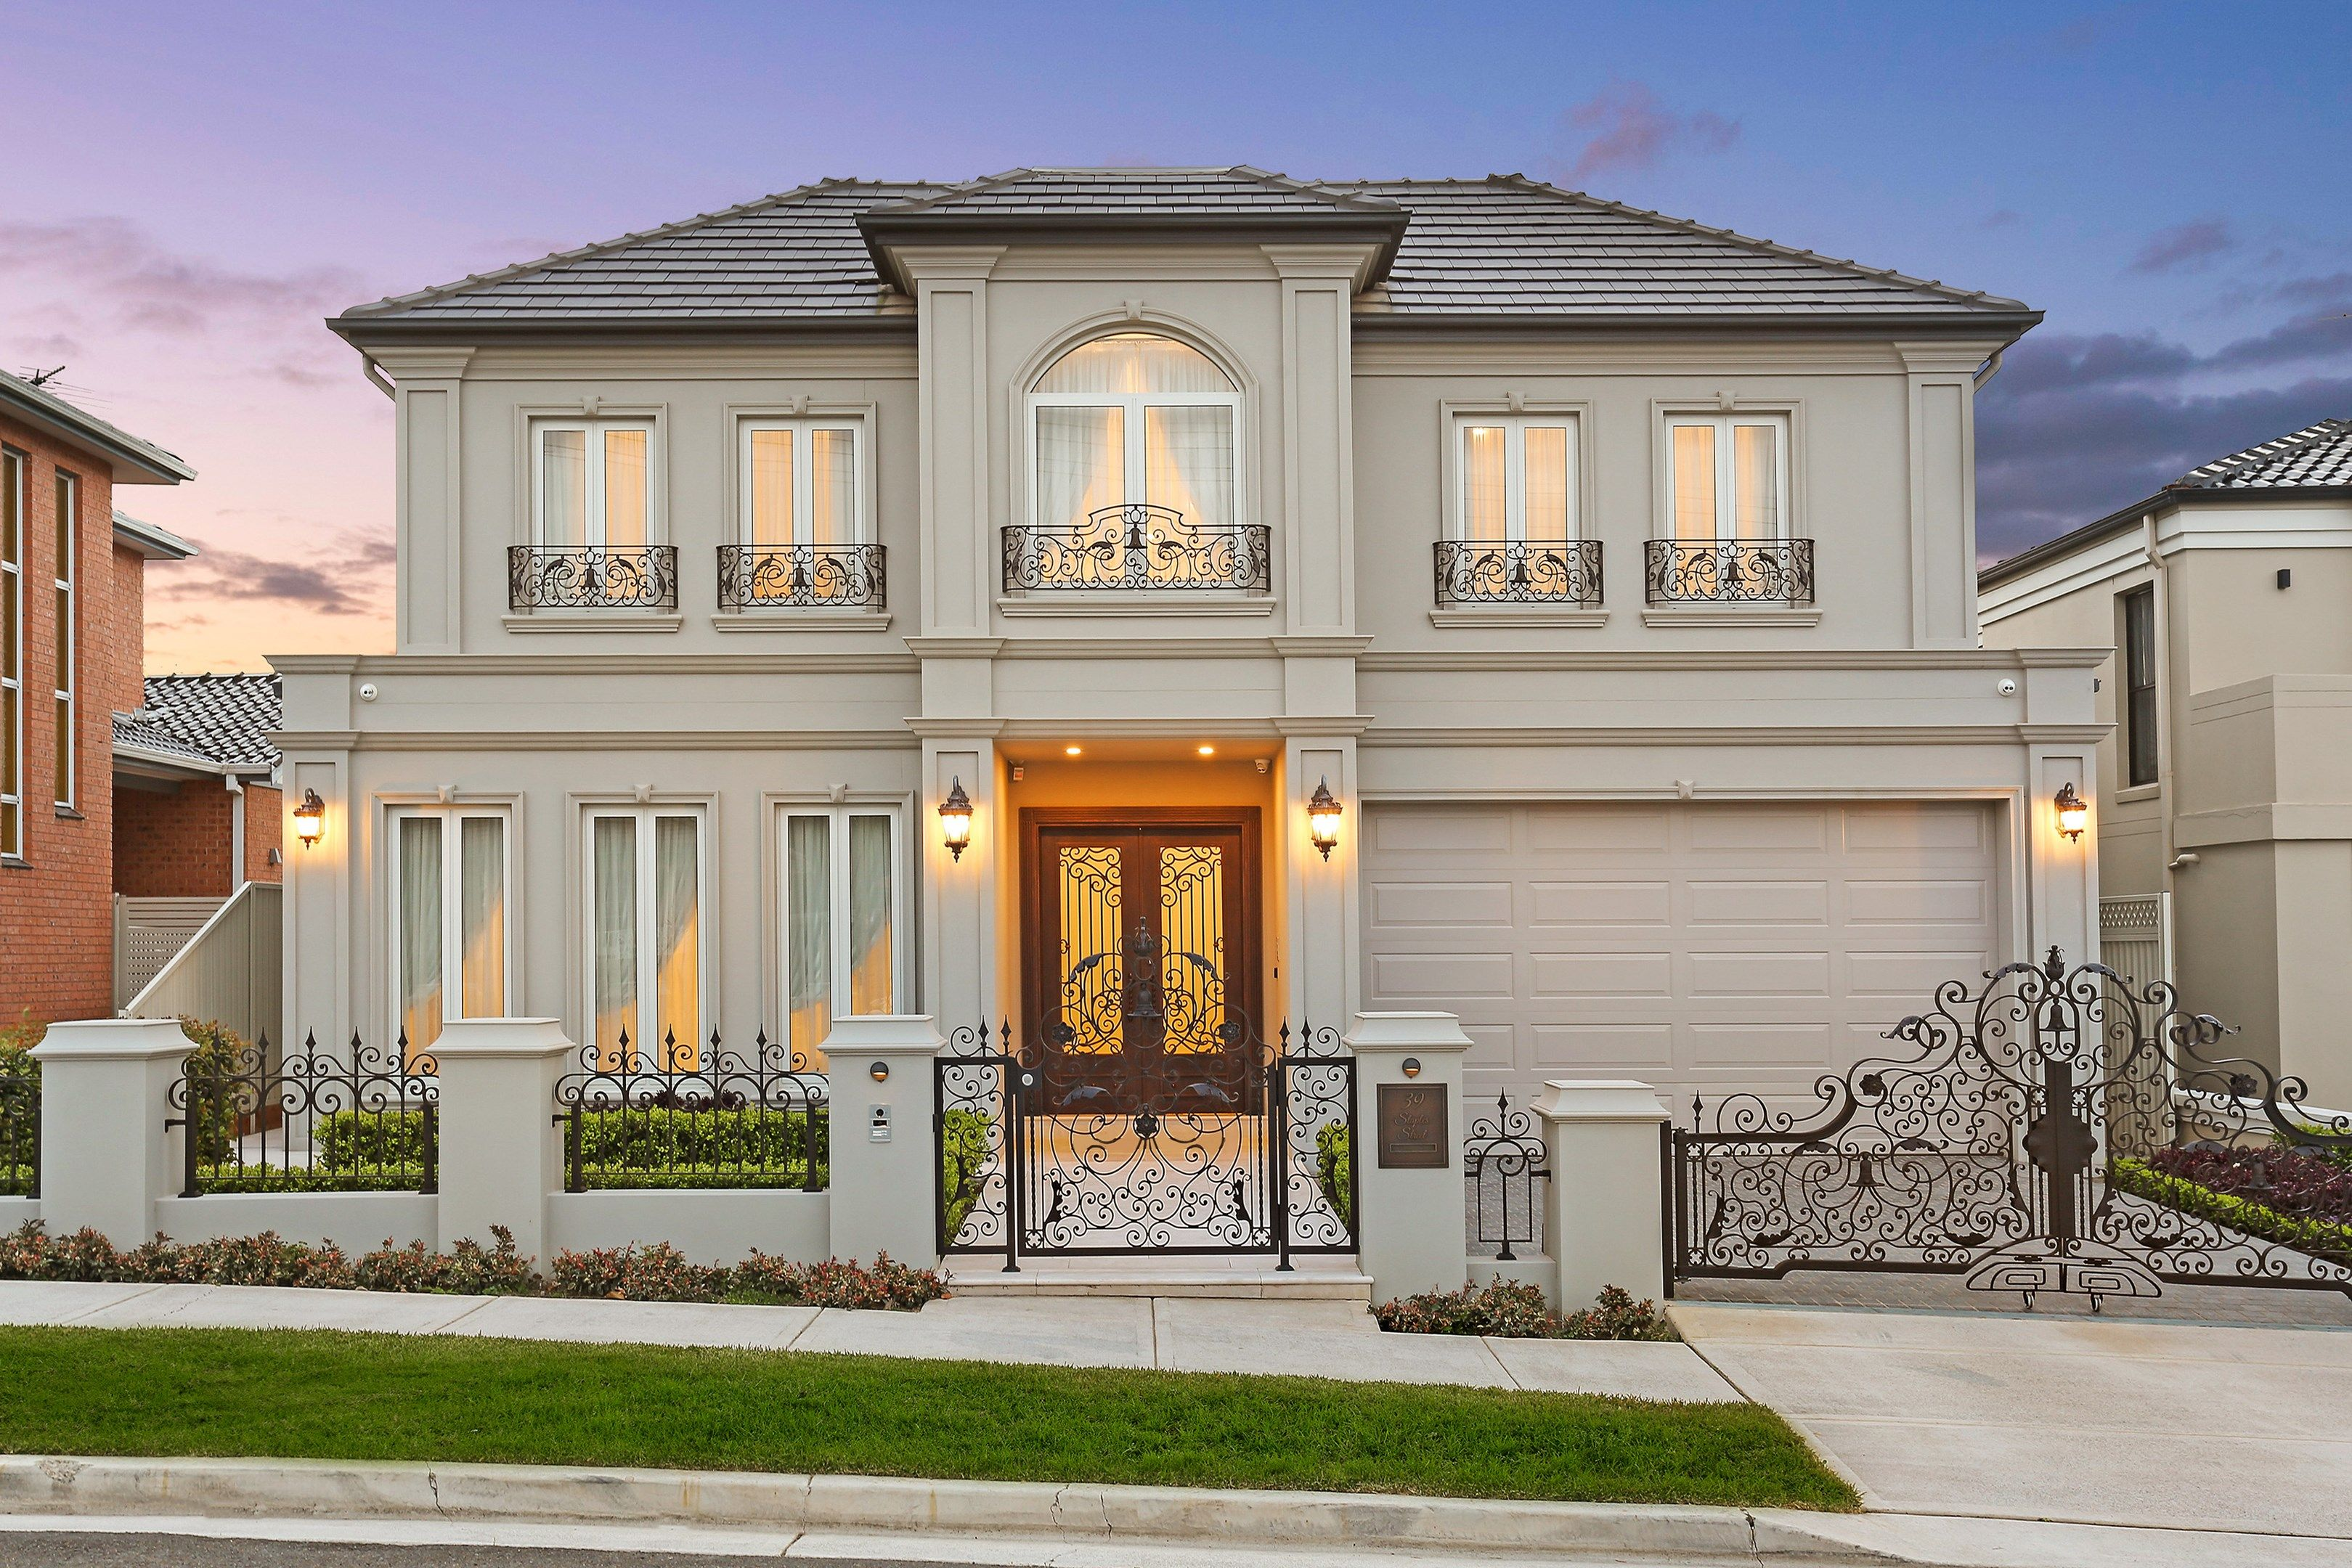 7 Bedroom House For Sale At 39 Staples Street Kingsgrove Nsw 2208 View Property Photos Floor Plans Home Building Tips Modern House Design Building A House